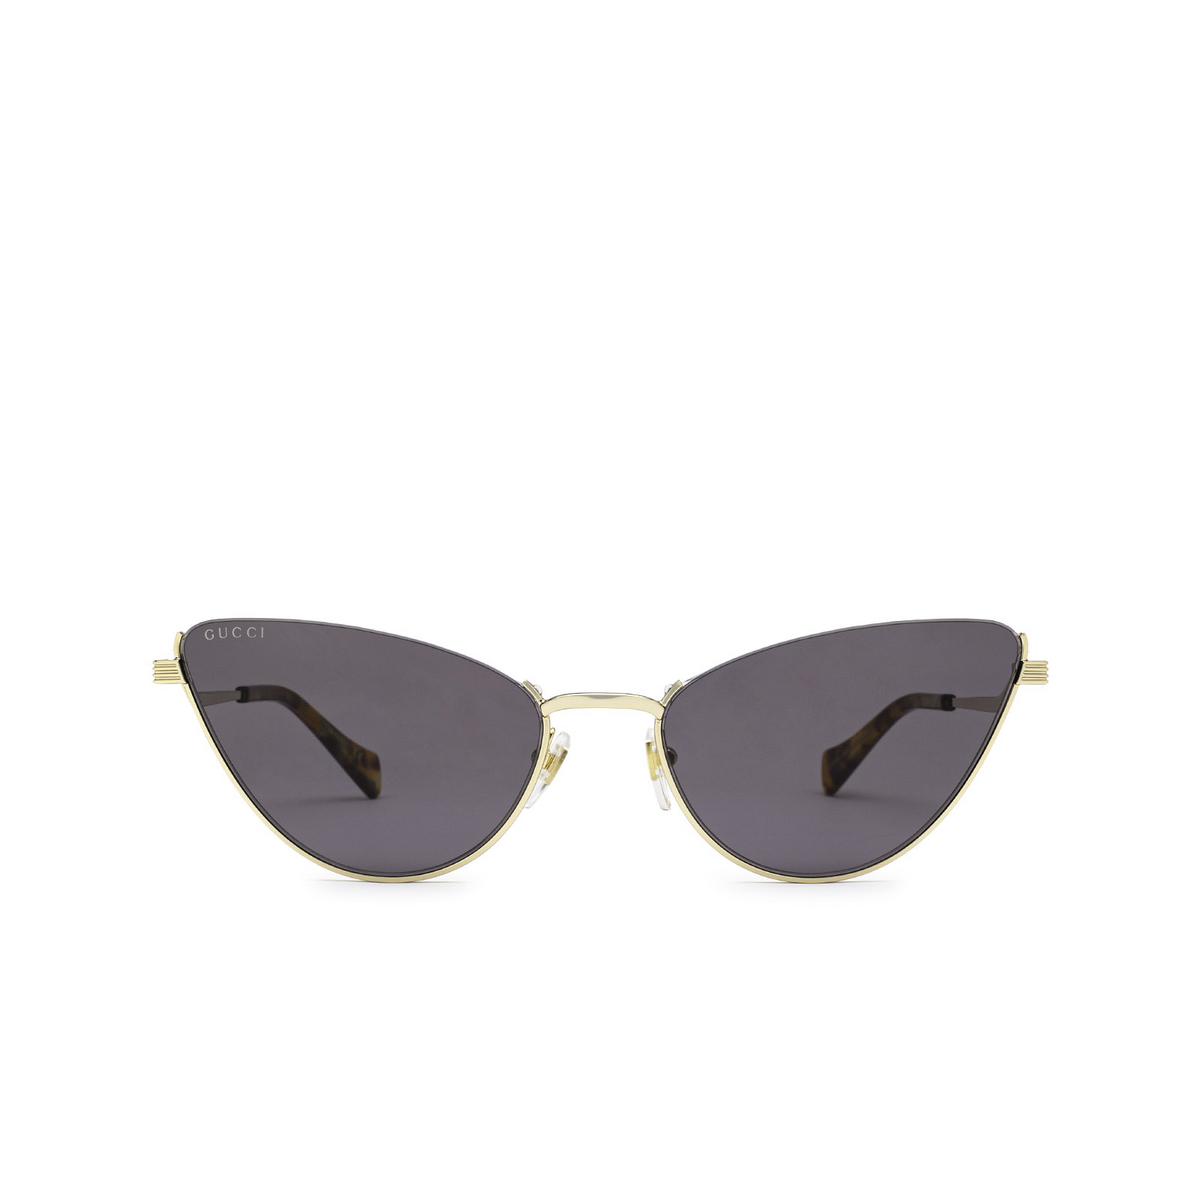 Gucci® Cat-eye Sunglasses: GG1006S color Gold 001 - front view.